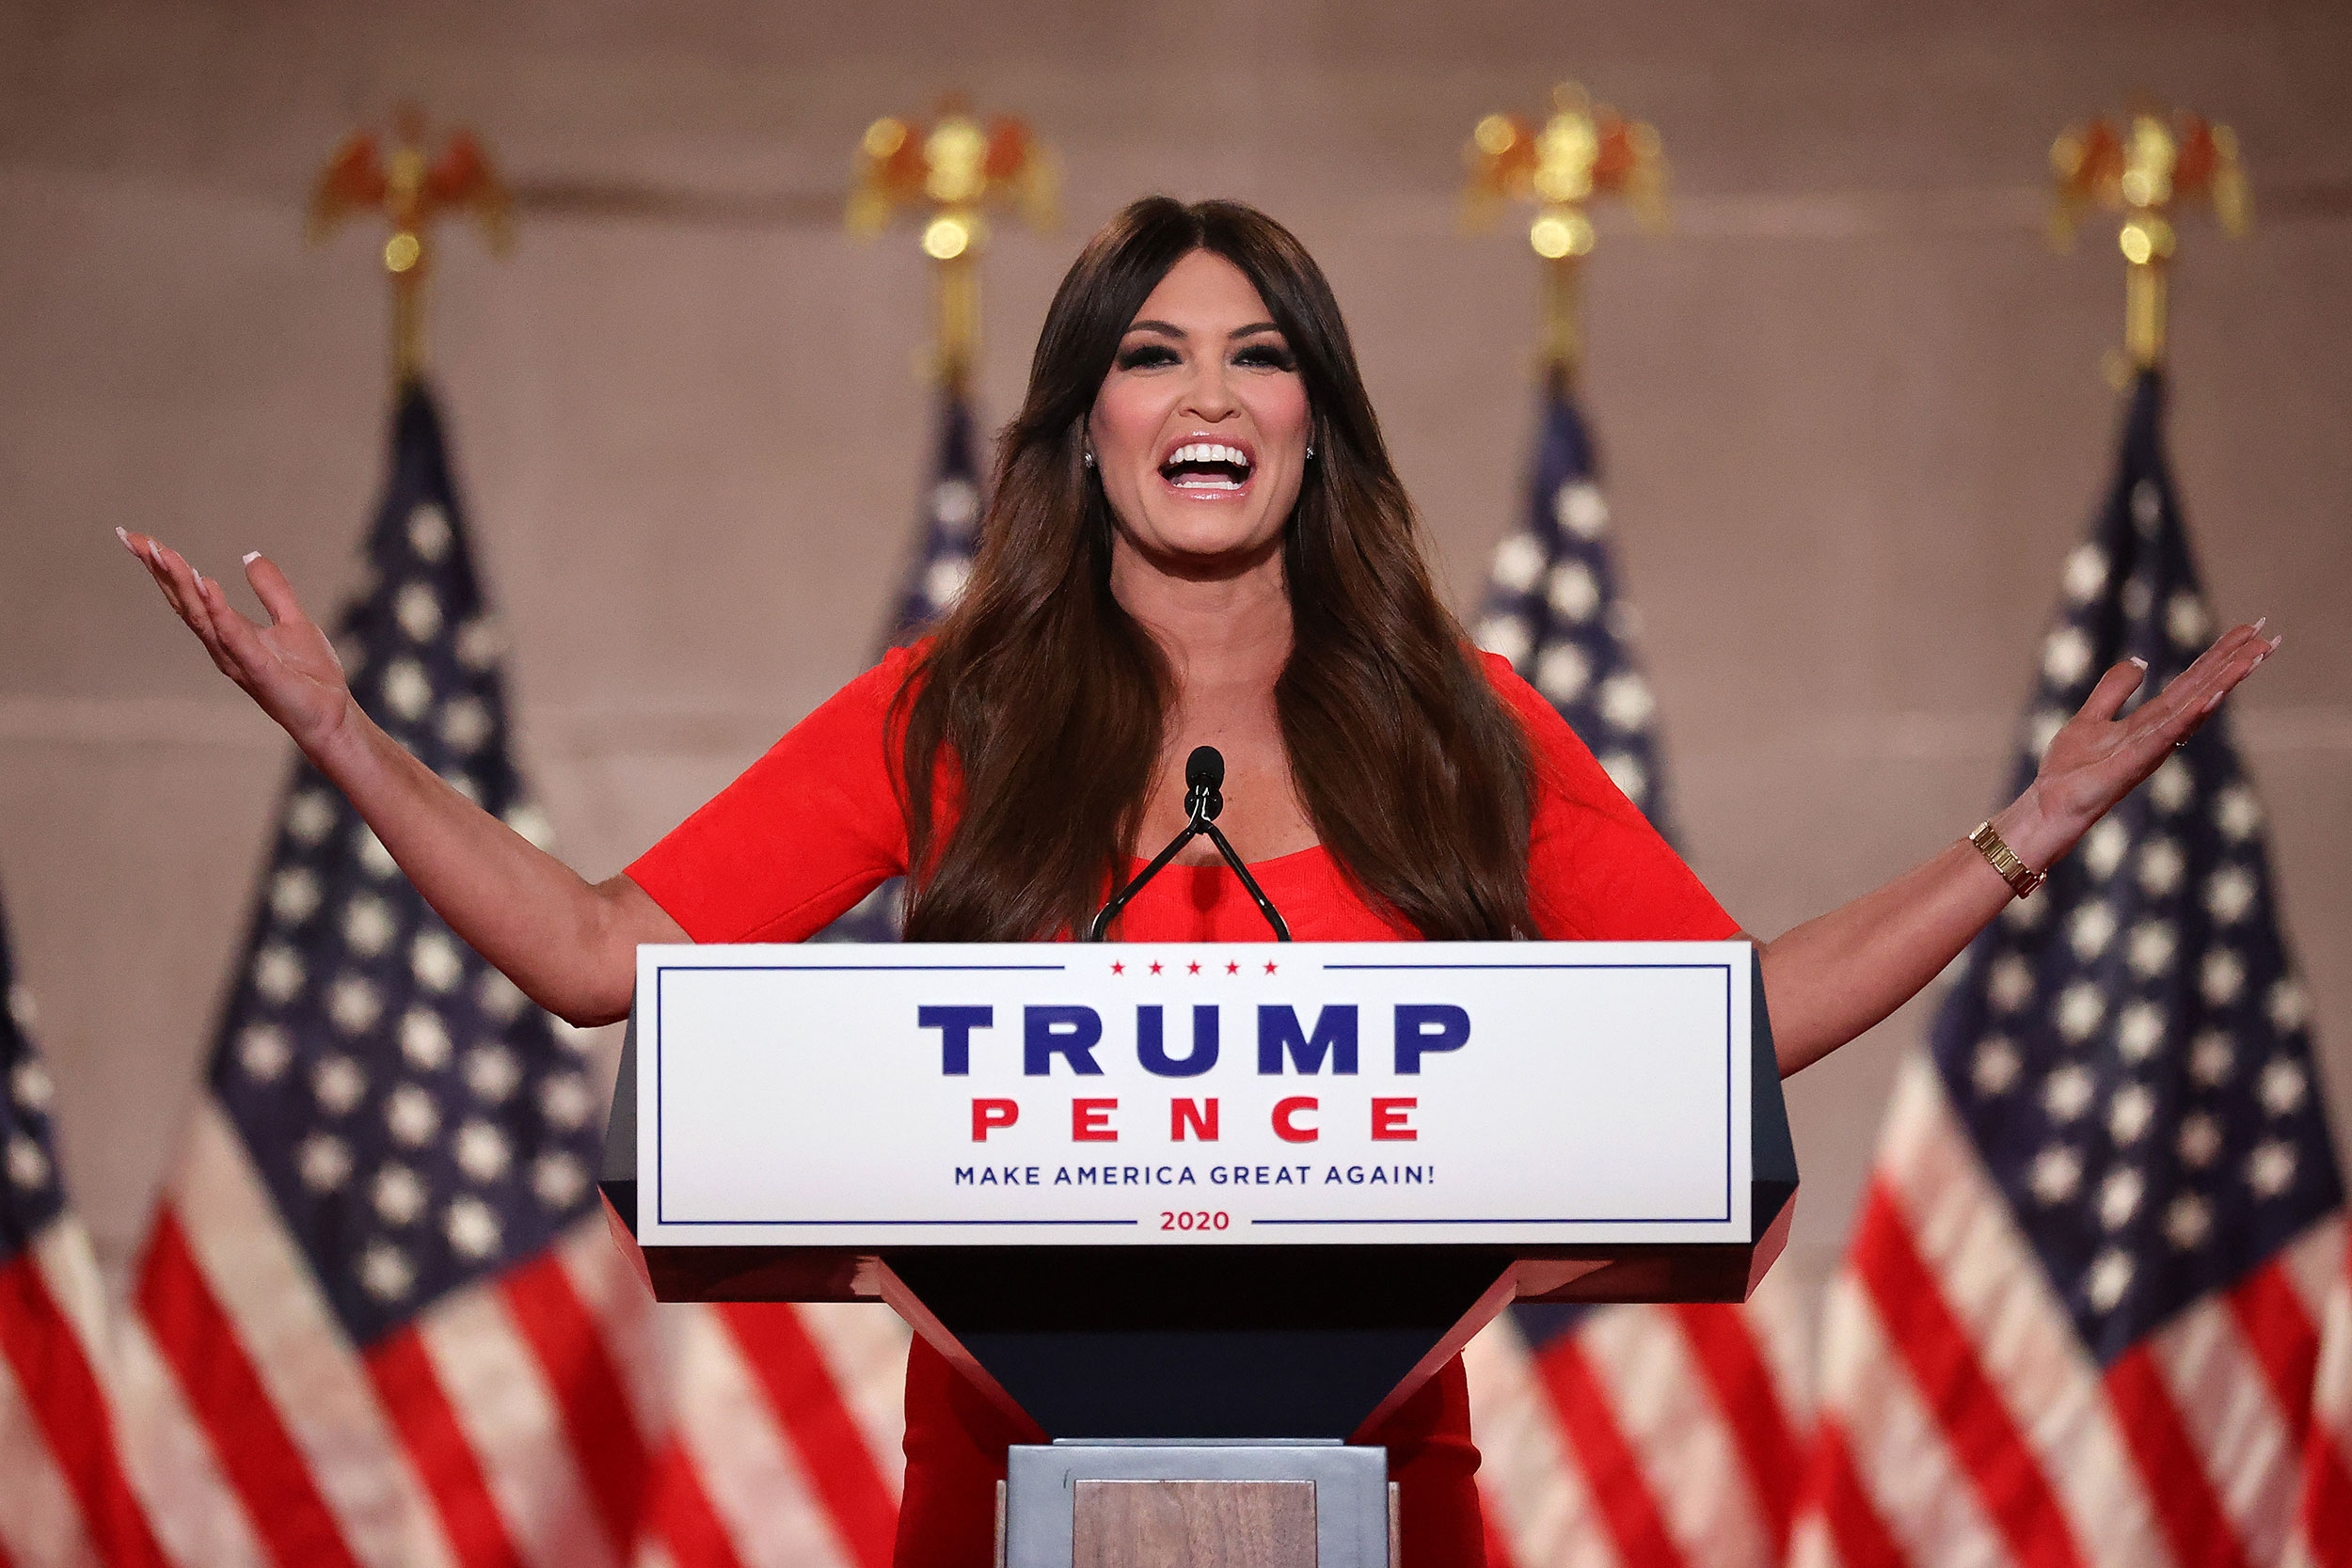 Kimberly Guilfoyle joins Eric Greitens' US Senate campaign in Missouri